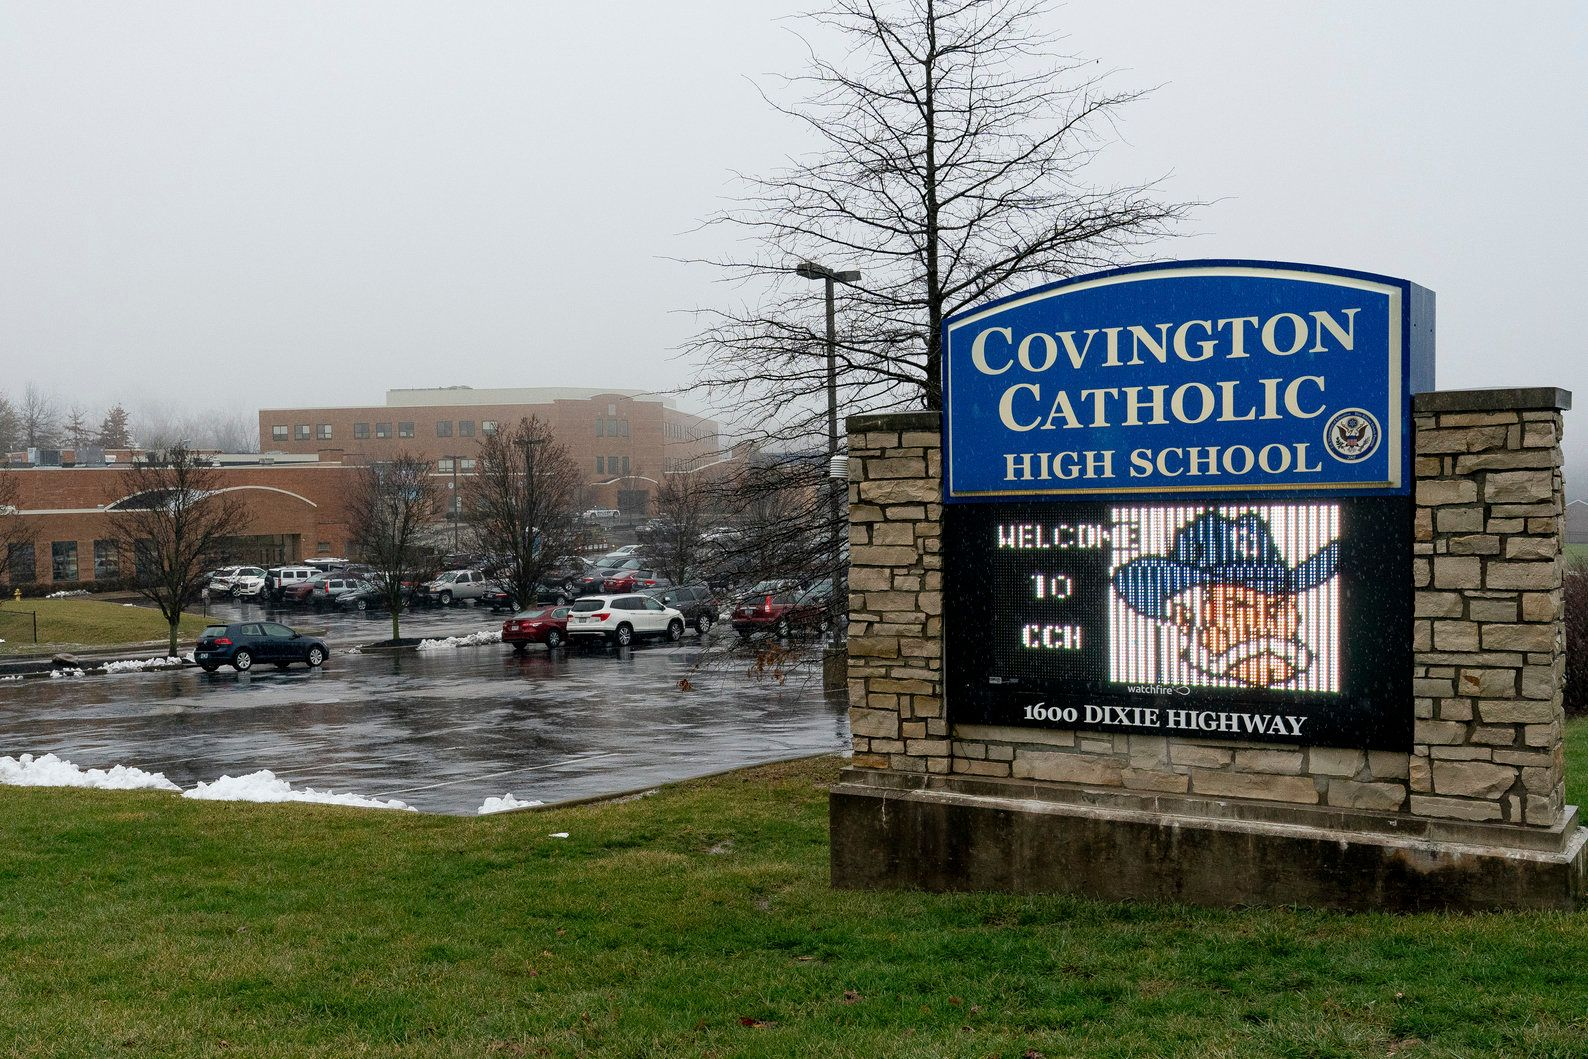 Covington Catholic High School in Park Hills, Kentucky, has faced heated backlash since a viral incident at the Lincoln Memor